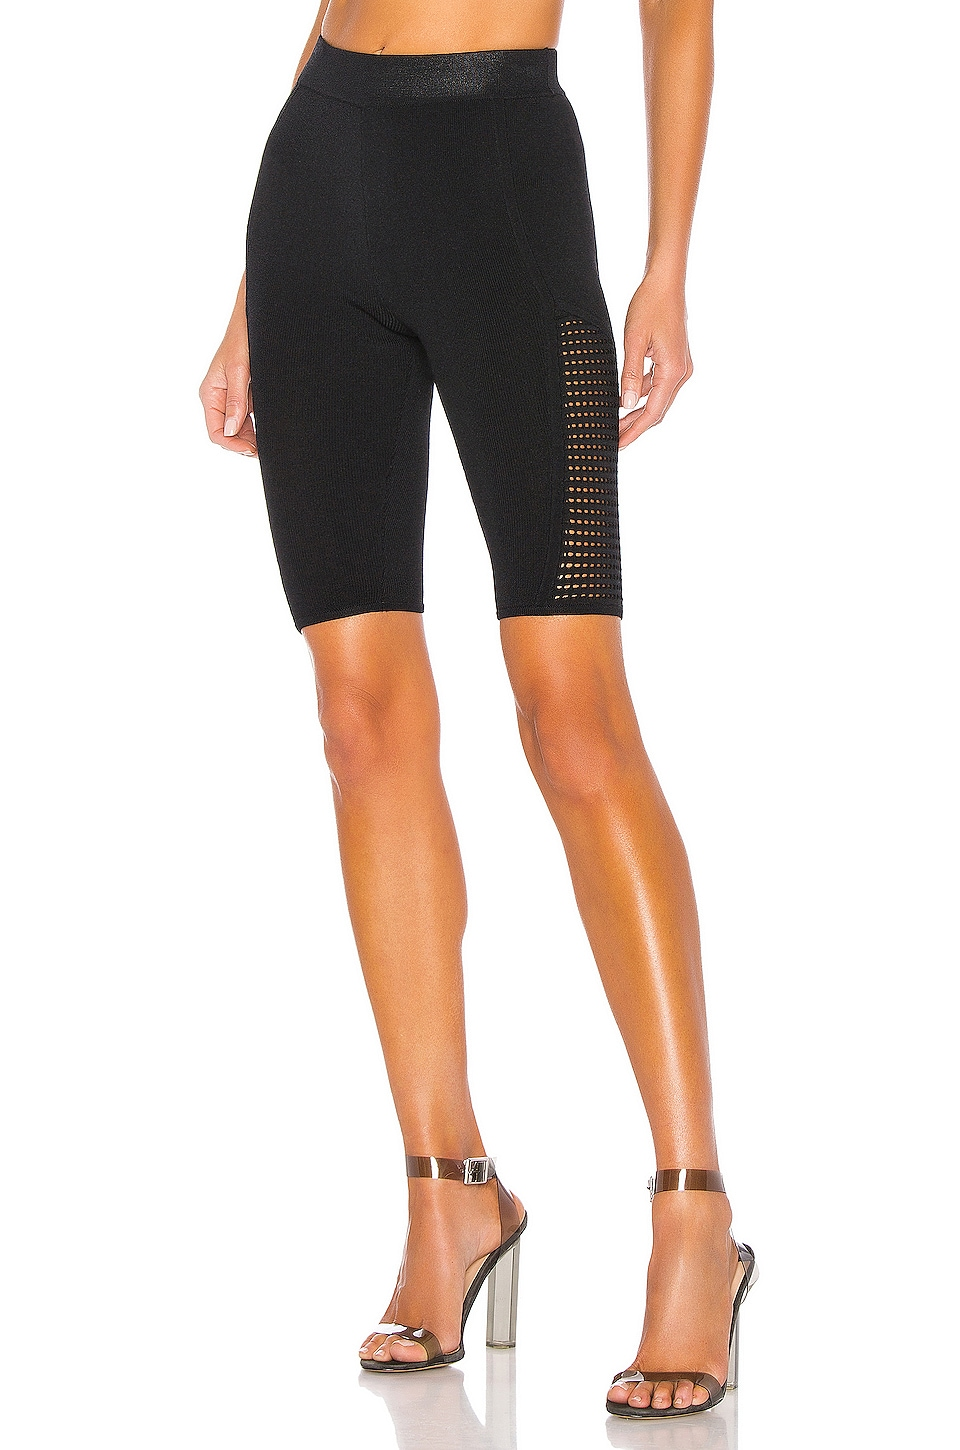 KENDALL + KYLIE X REVOLVE Mesh Stitch Bike Short in Black